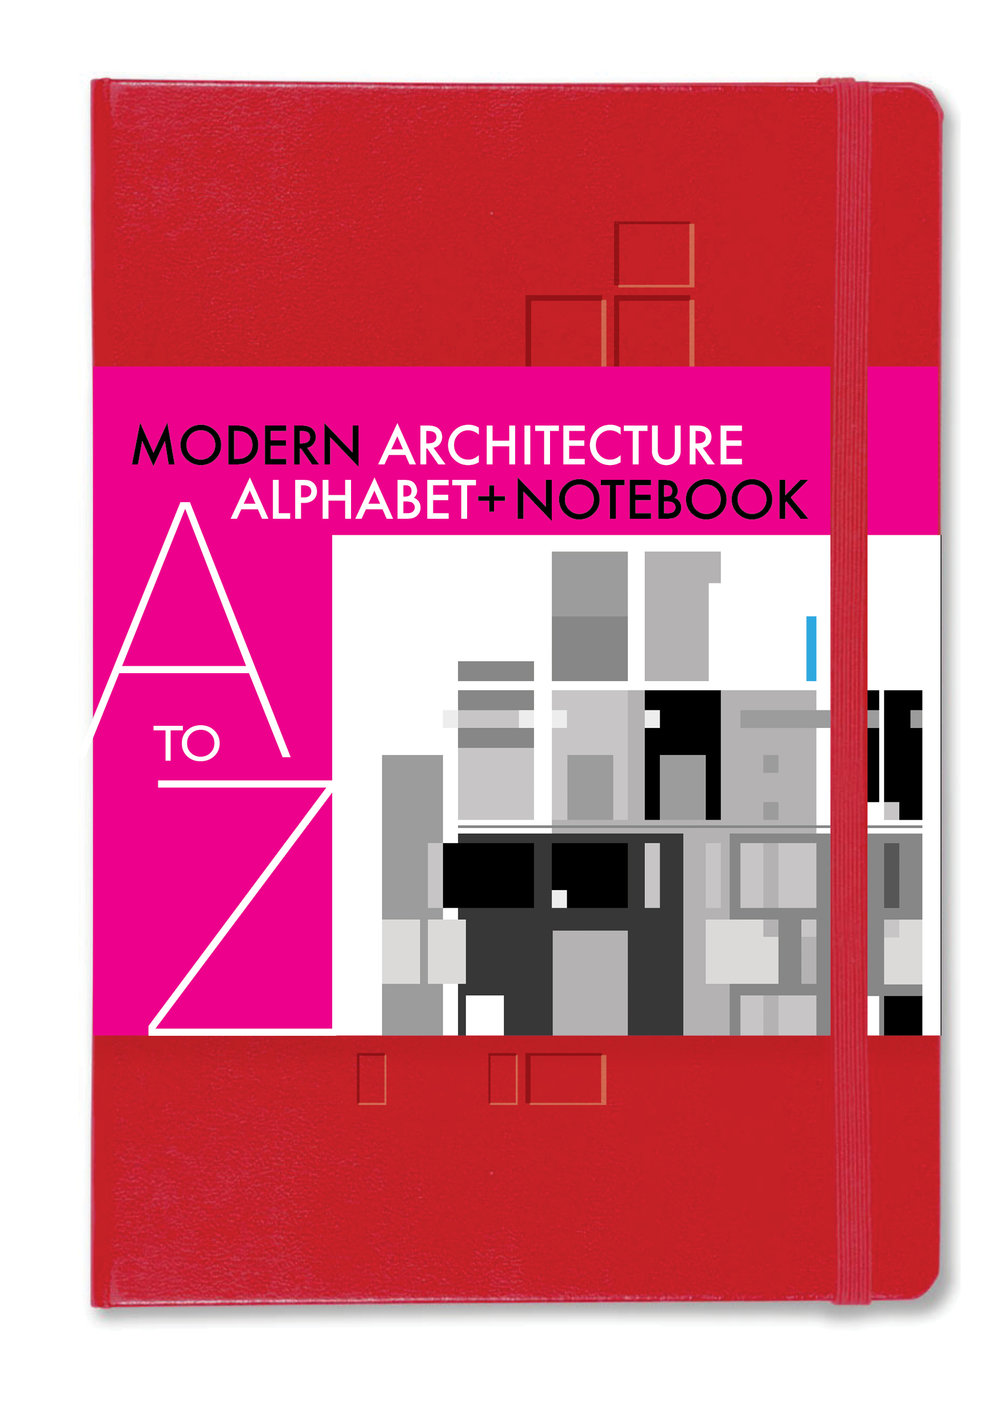 Architecture NOTEBOOK+ with a foldout guide A-Z of modern iconic buildings